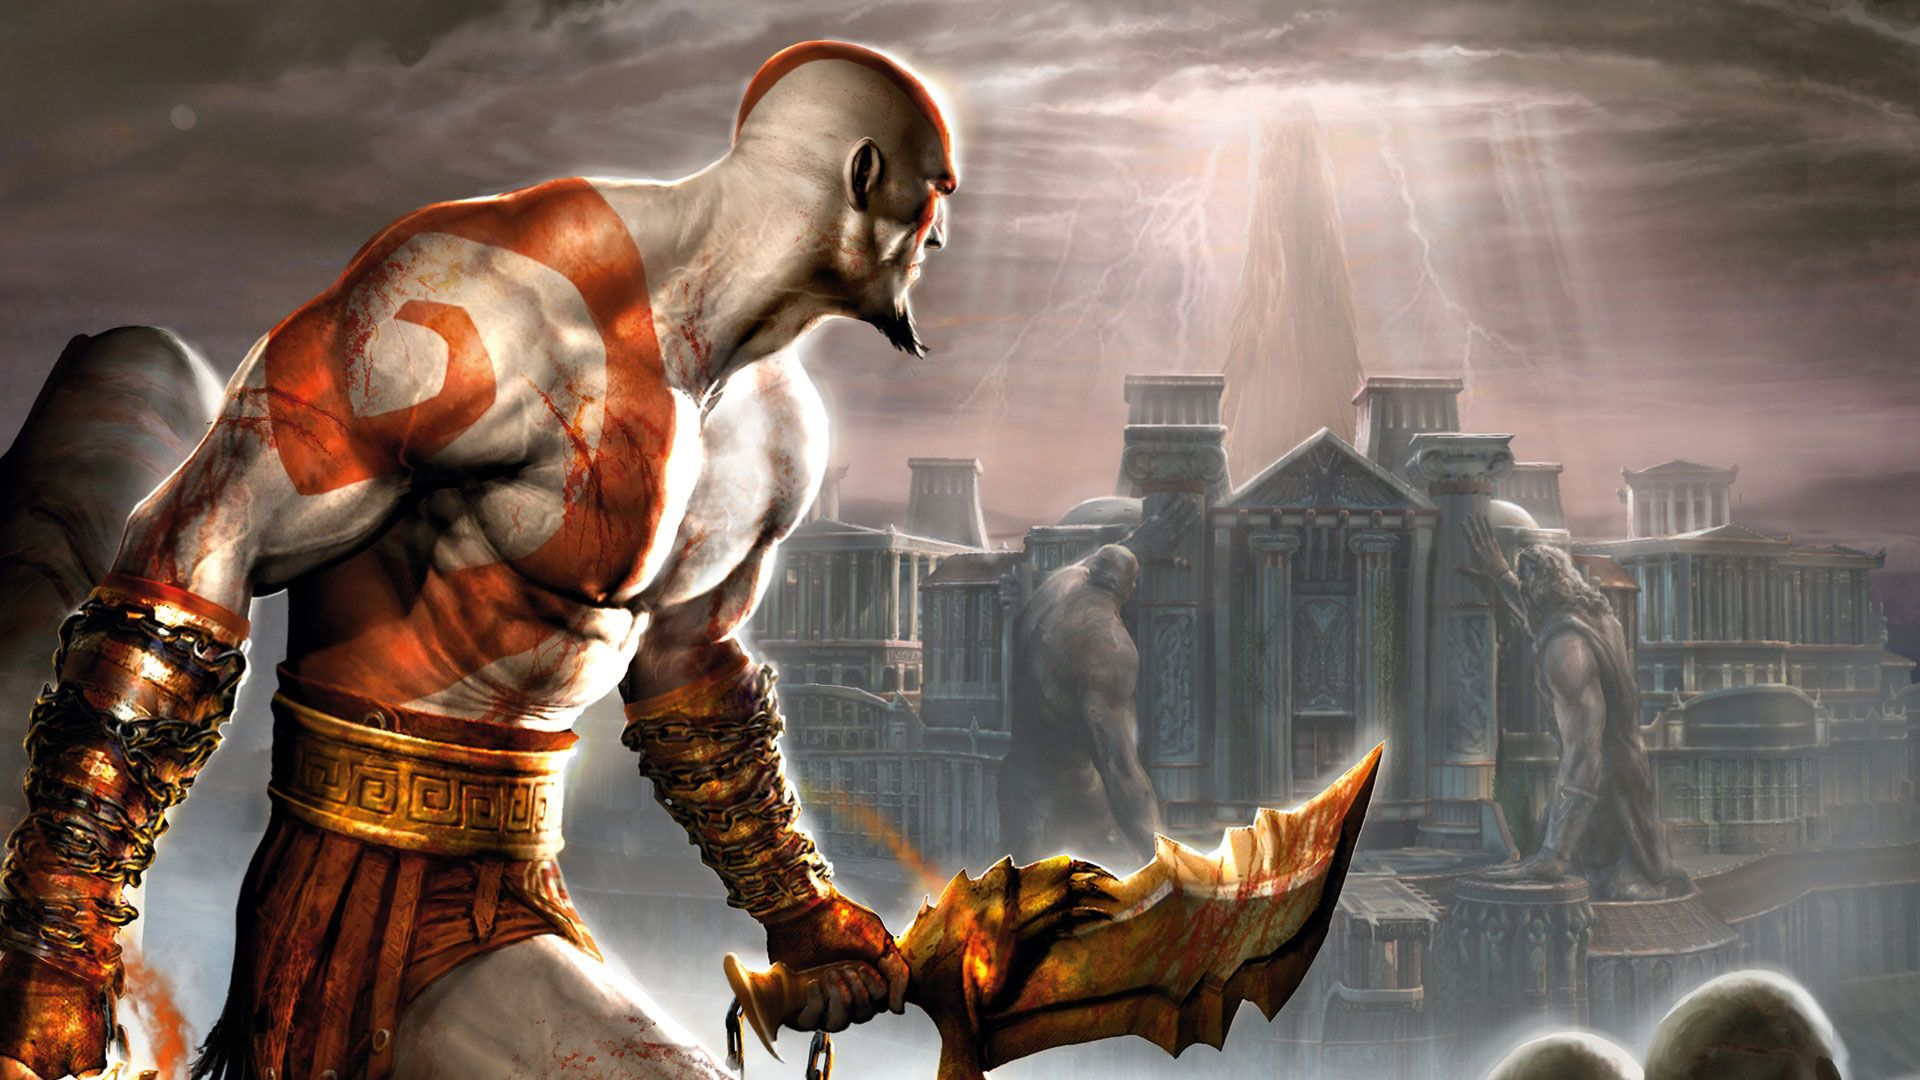 God Of War Best Games Pc Games New Video Games Video